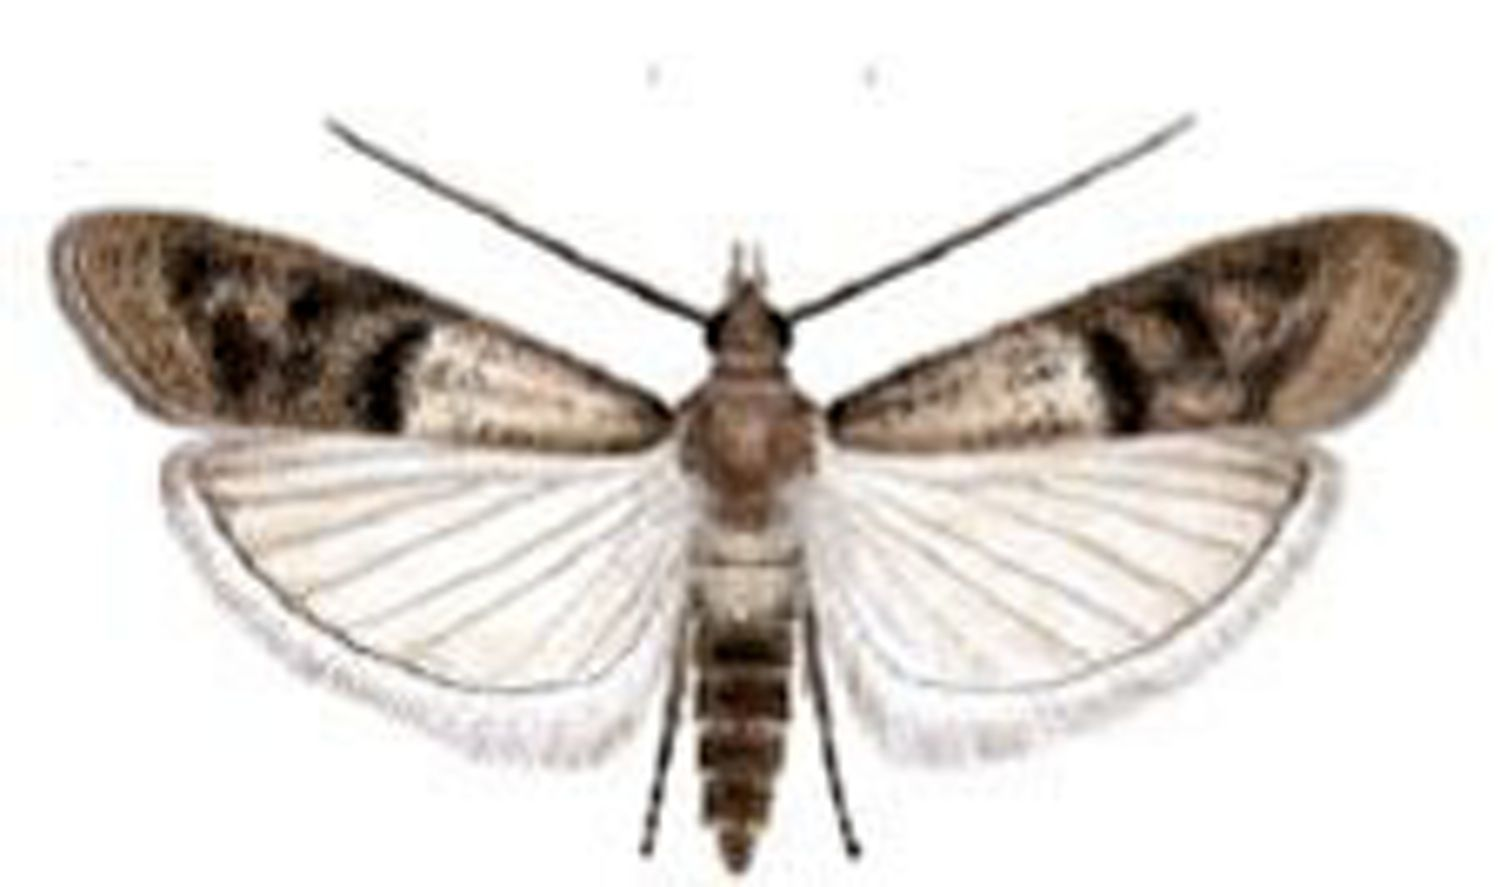 How Can I Get Rid of My Pantry Moth Infestation? | Pantry moths ...